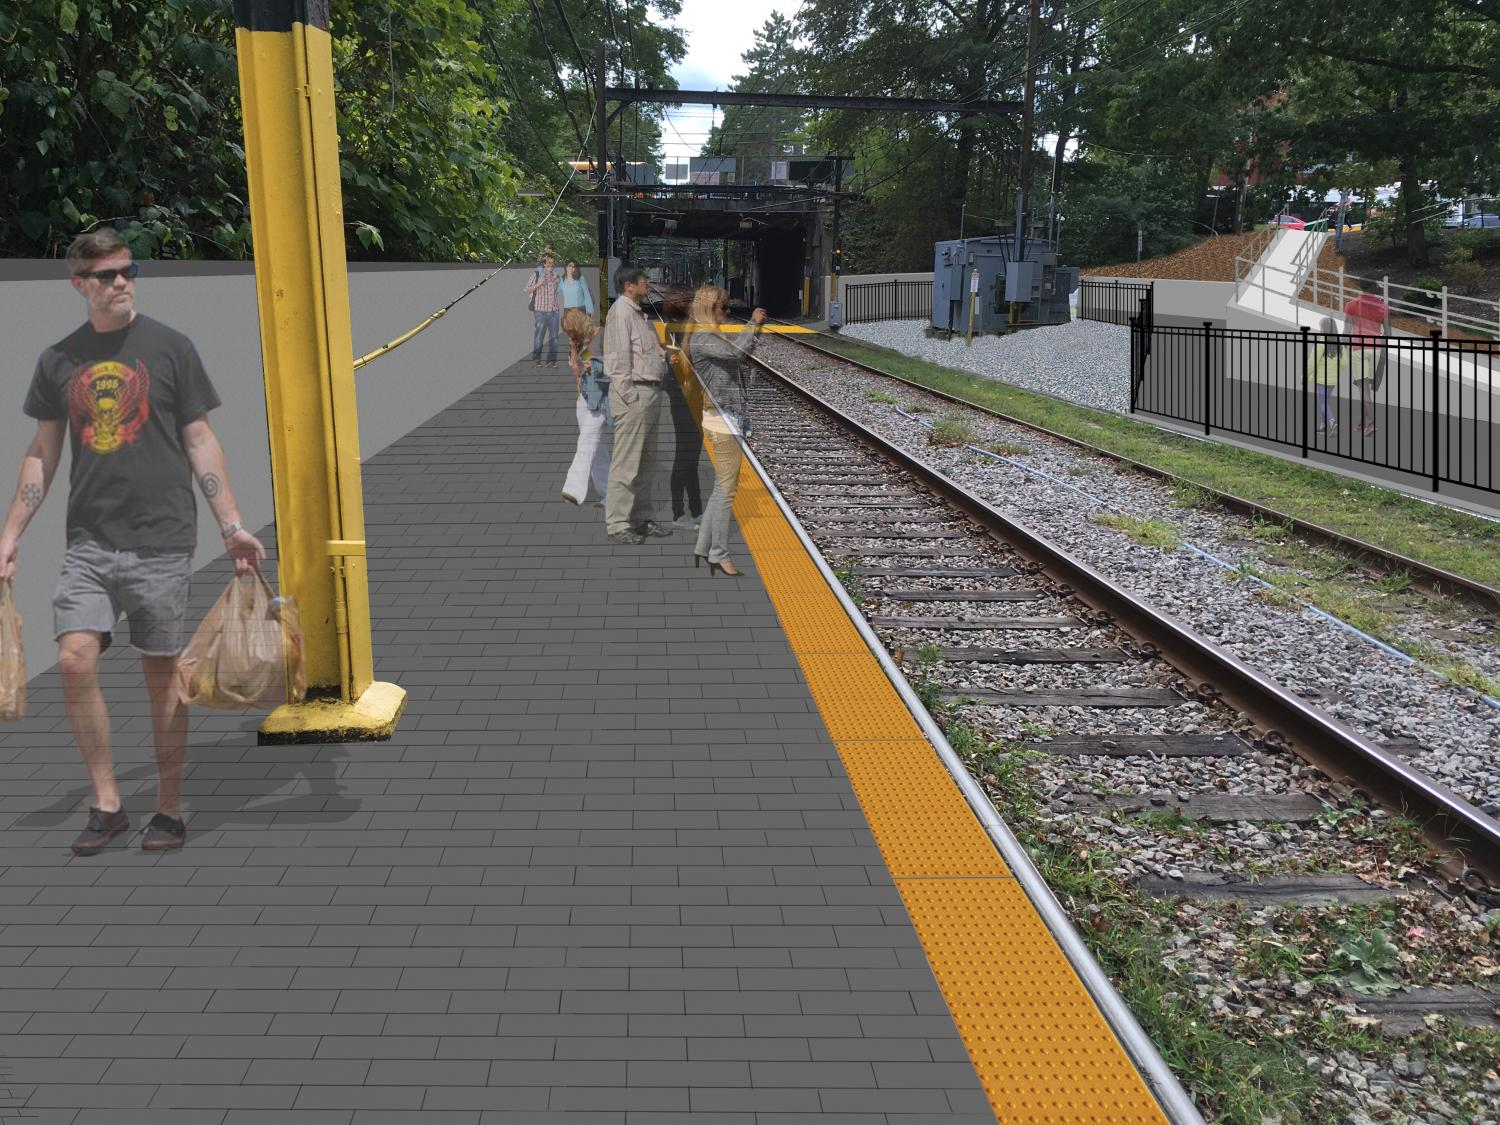 Rendering of new level boarding platform with tactile edge